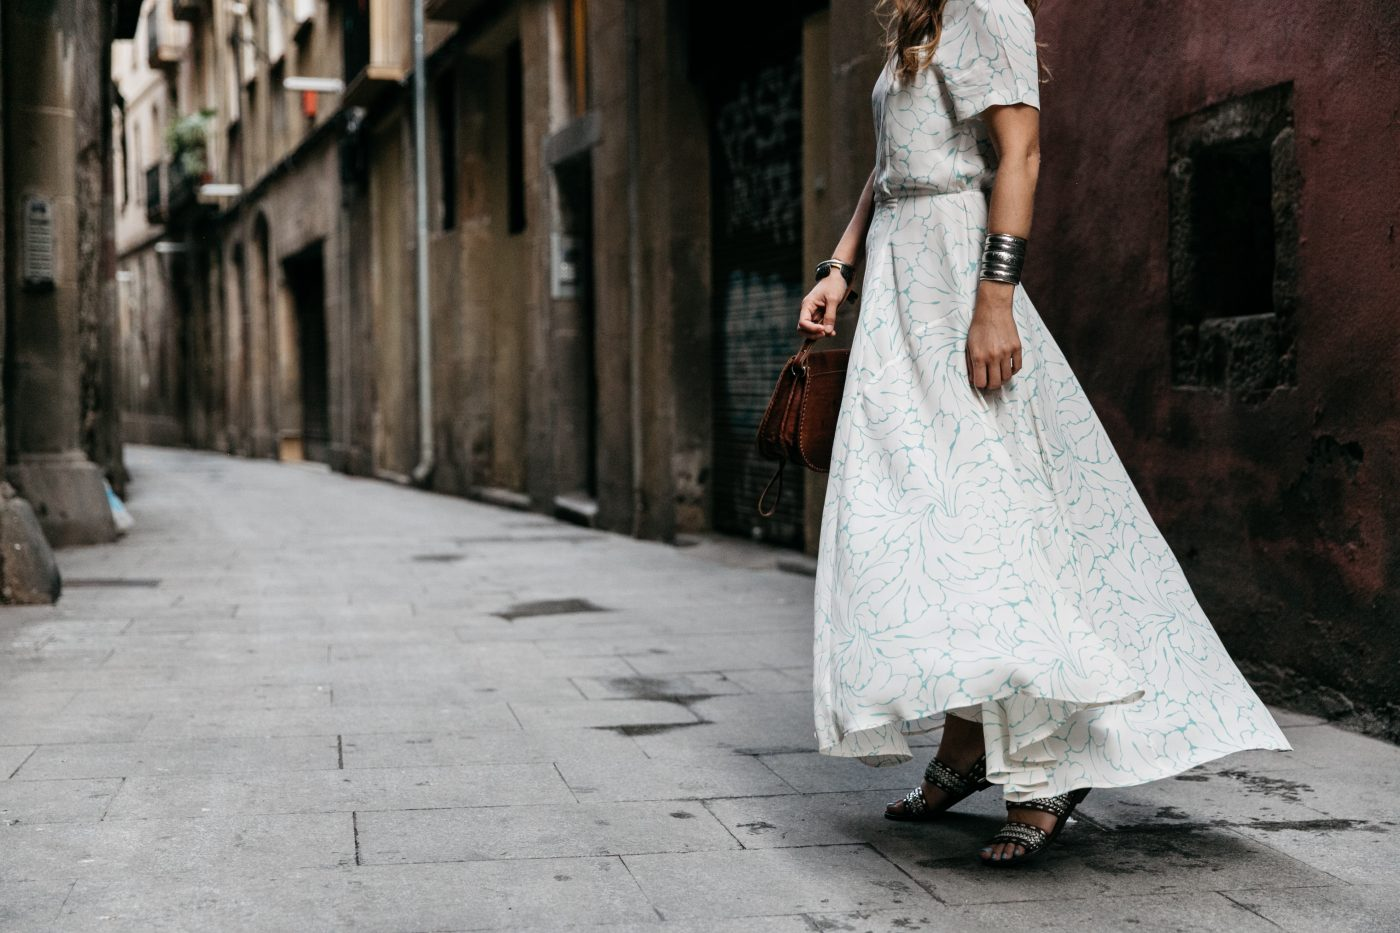 Long_Dress-HM_Leather_Bag-Maje_Sandals-Outfit-Primavera_Sound-Collage_Vintage-Street_Style-52